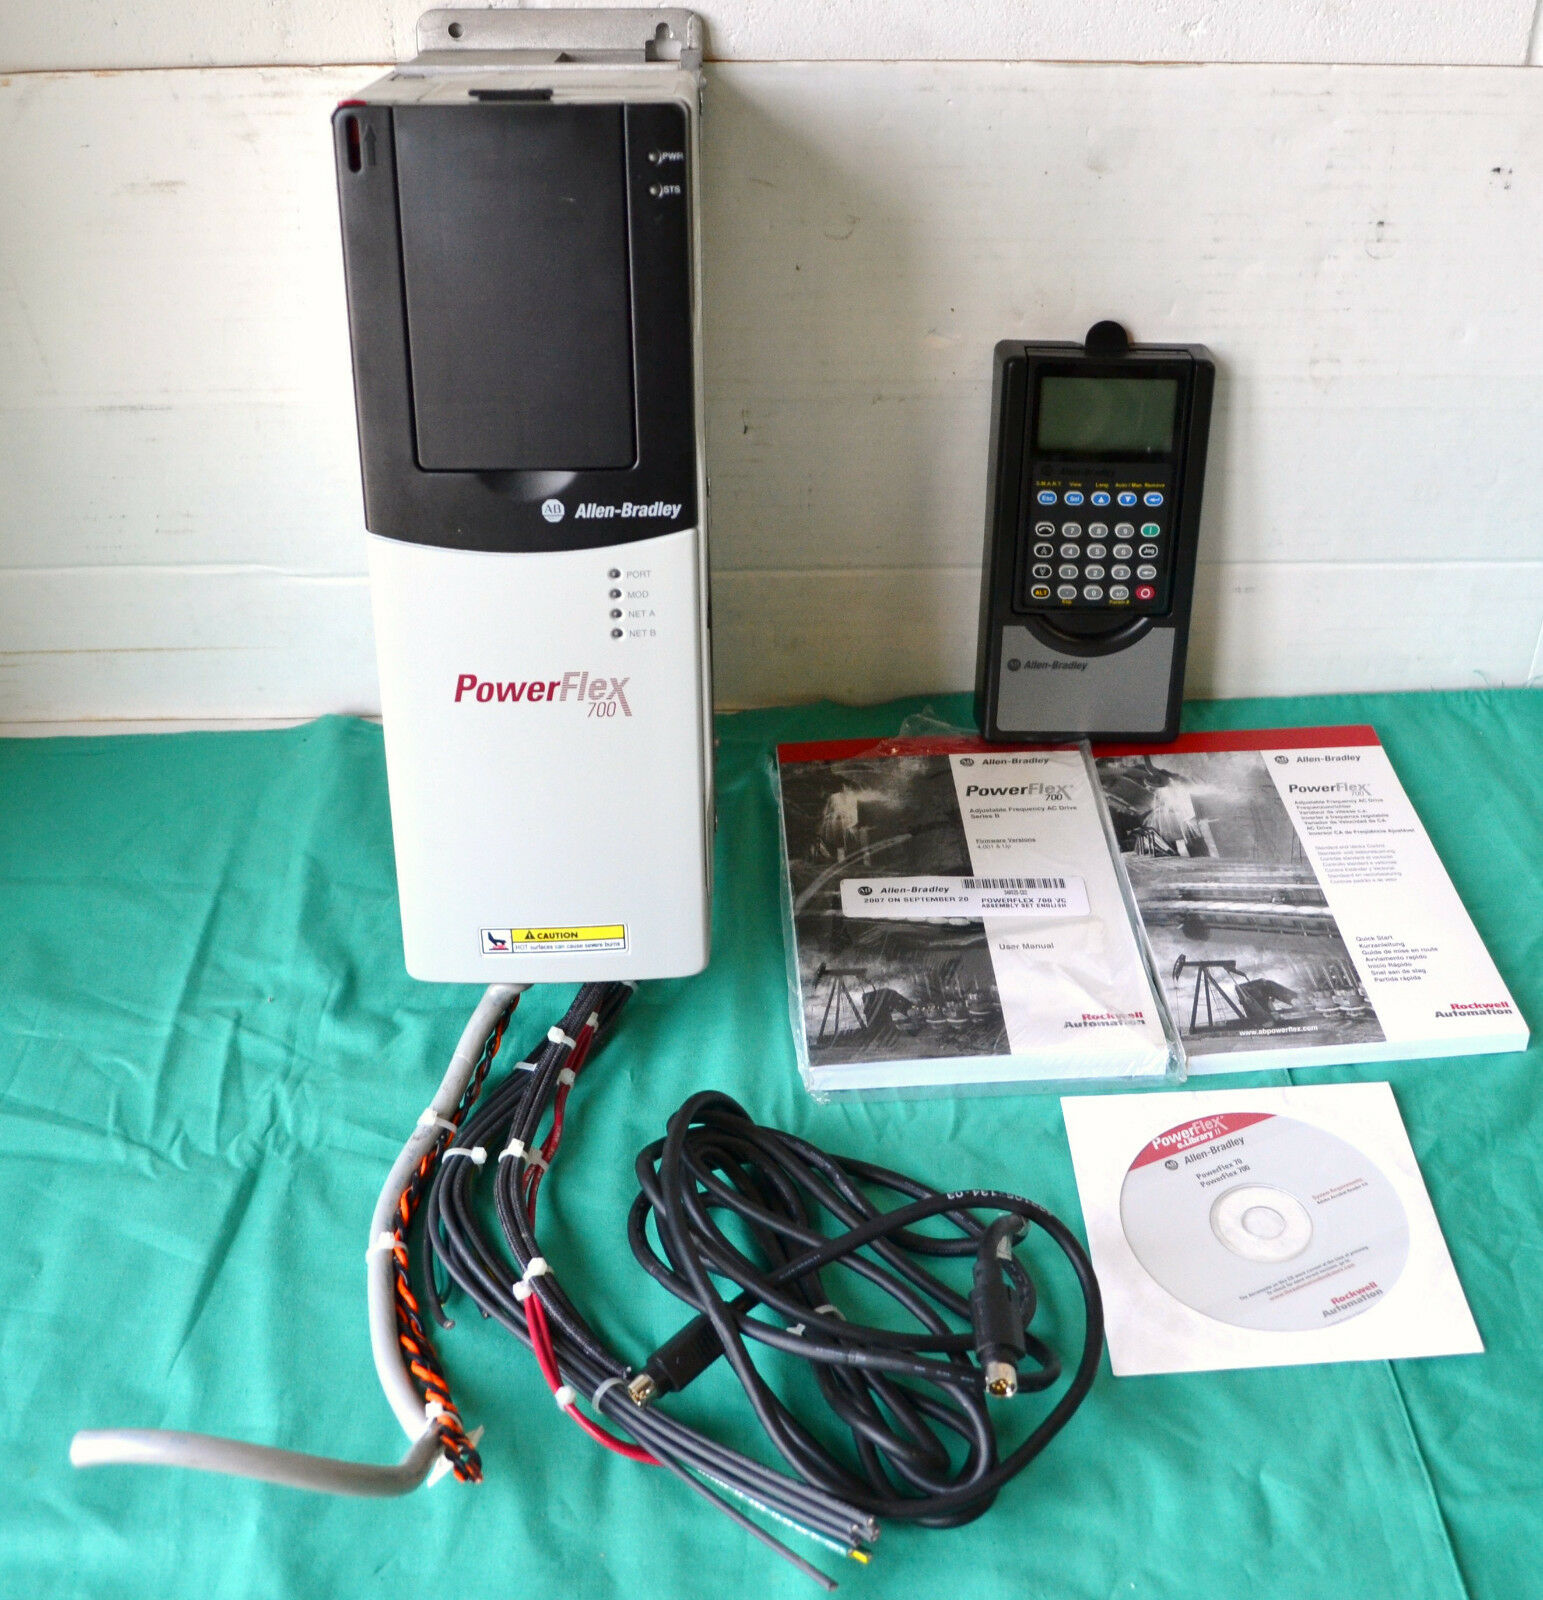 Allen Bradley Powerflex 700 Ac Drive 480v 3ph With Software Disc And Wiring Manual 1 Of 12only Available